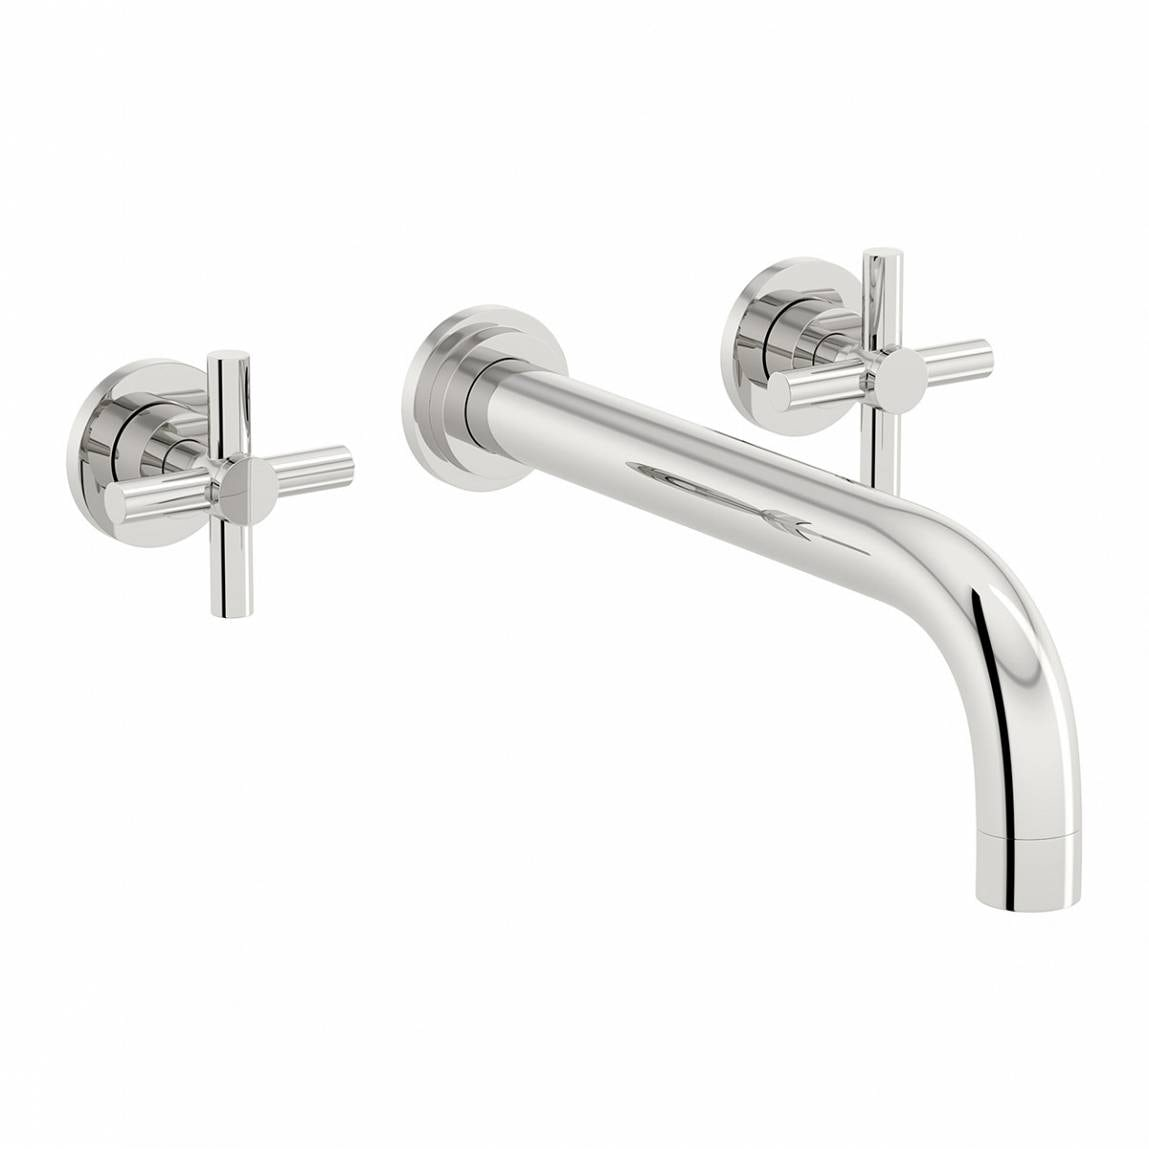 Mode Tate wall mounted bath filler tap offer pack